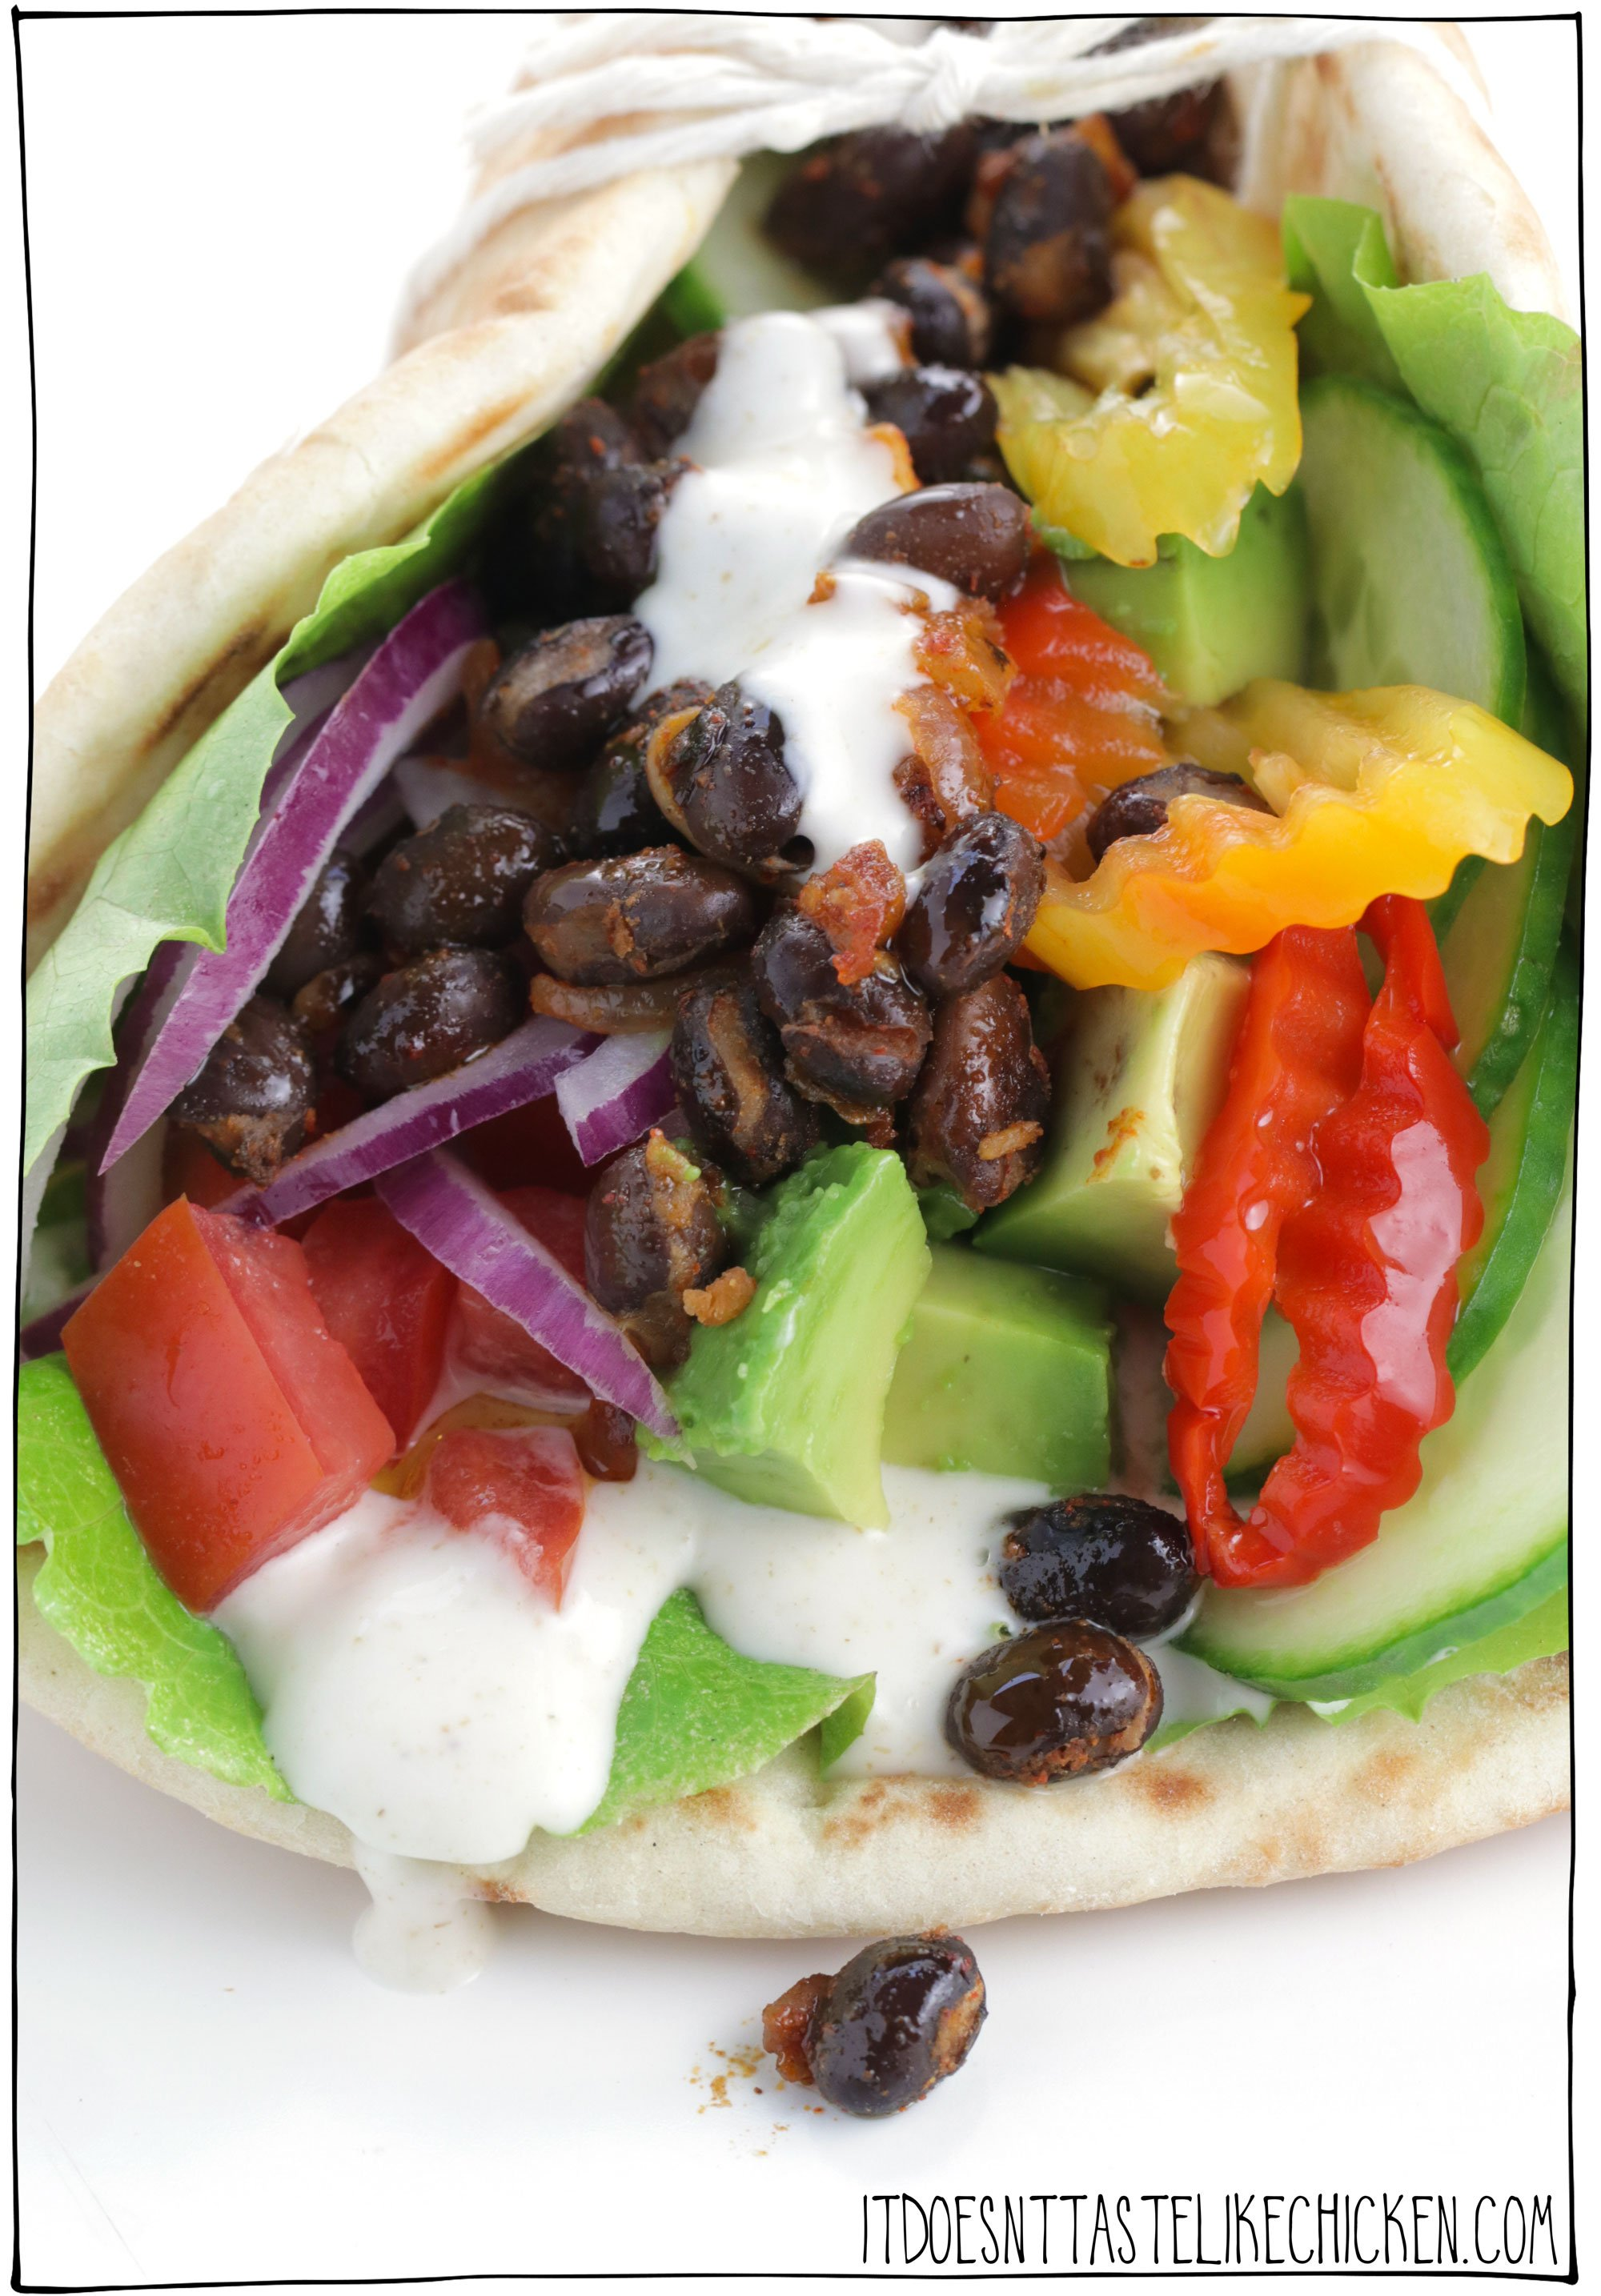 Vegan Spicy Black Bean Pita Sandwich! This 20-minute vegan pita is next-level delicious! With spicy black beans, a creamy tangy mayo, and a mountain of fresh veg, this is the perfect hearty vegan sandwich the enjoy for lunch or dinner. These sandwiches can be made oil-free, gluten-free, and if you don't have any pitas on hand, feel free to load all of these toppings into a wrap or on your favourite sandwich bread. #itdoesnttastelikechicken #veganrecipes